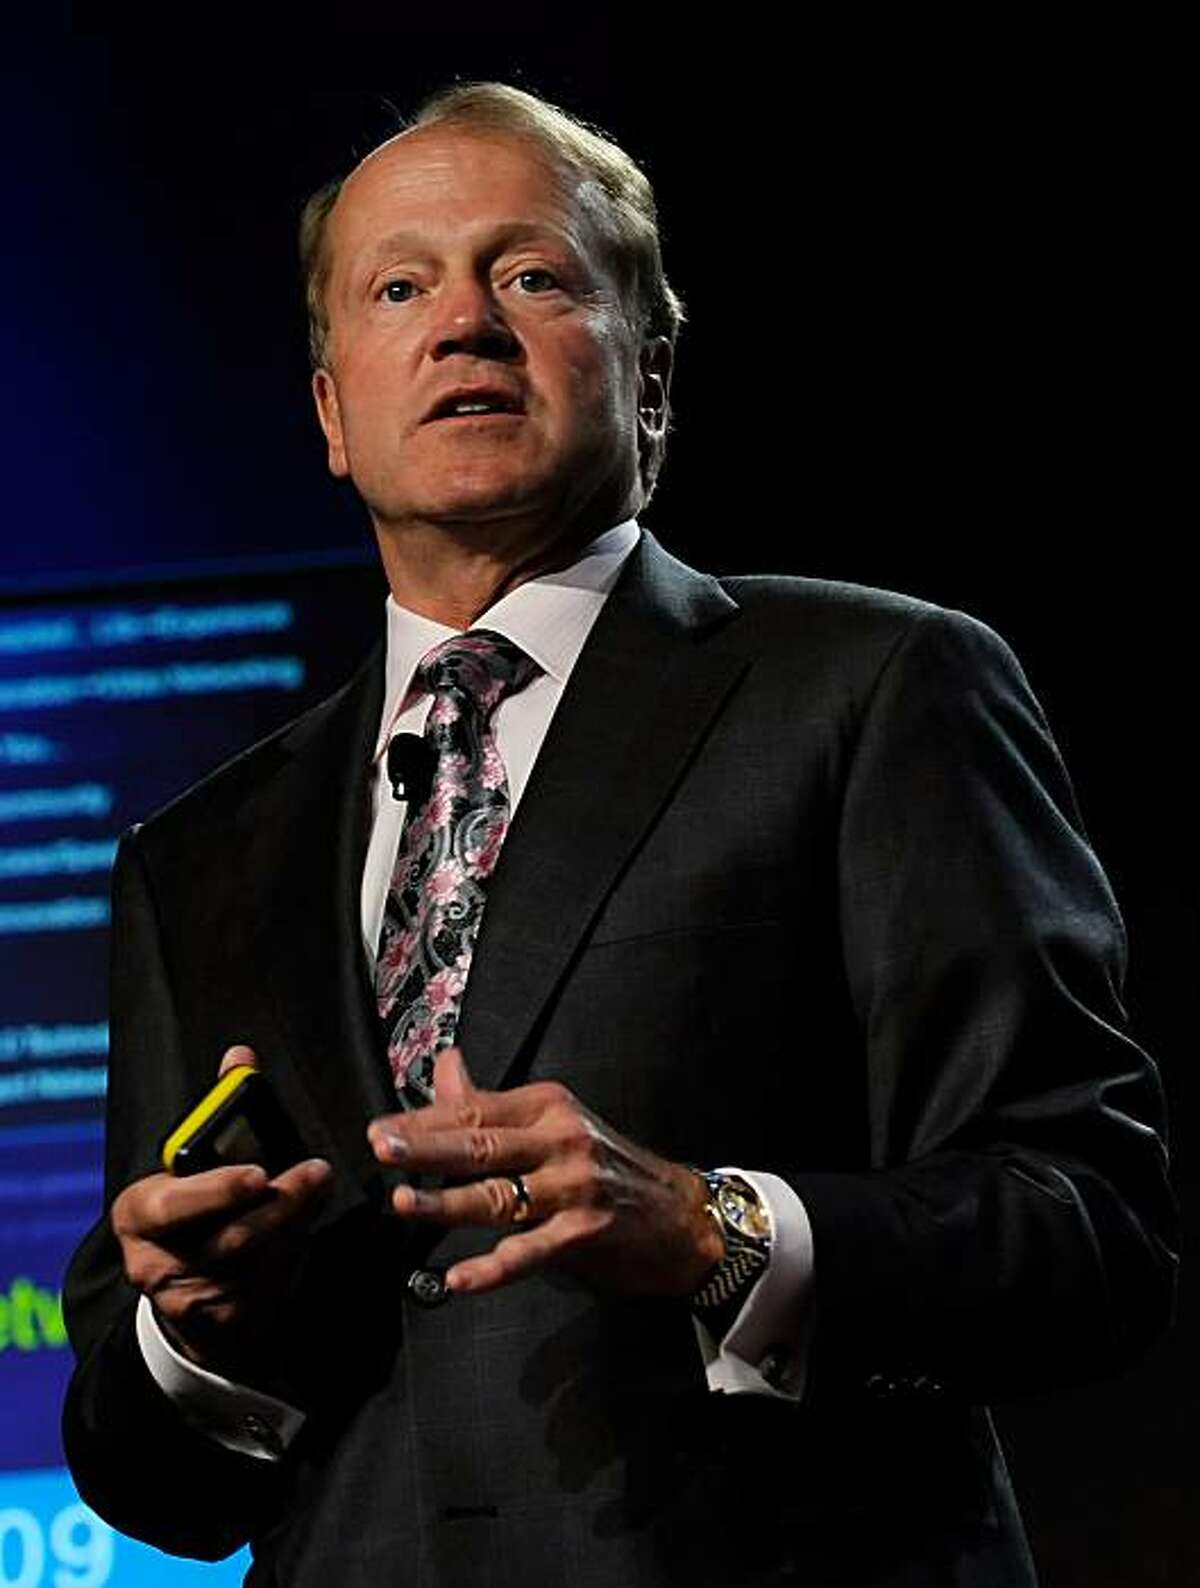 LAS VEGAS - JANUARY 06: Cisco Systems chairman and CEO John Chambers speaks during a press event at the 2010 International Consumer Electronics Show at the Venetian January 6, 2010 in Las Vegas, Nevada. CES, the world's largest annual consumer technologytradeshow, runs from January 7-10 and is expected to feature 2,500 exhibitors showing off their latest products and services to about 110,000 attendees.